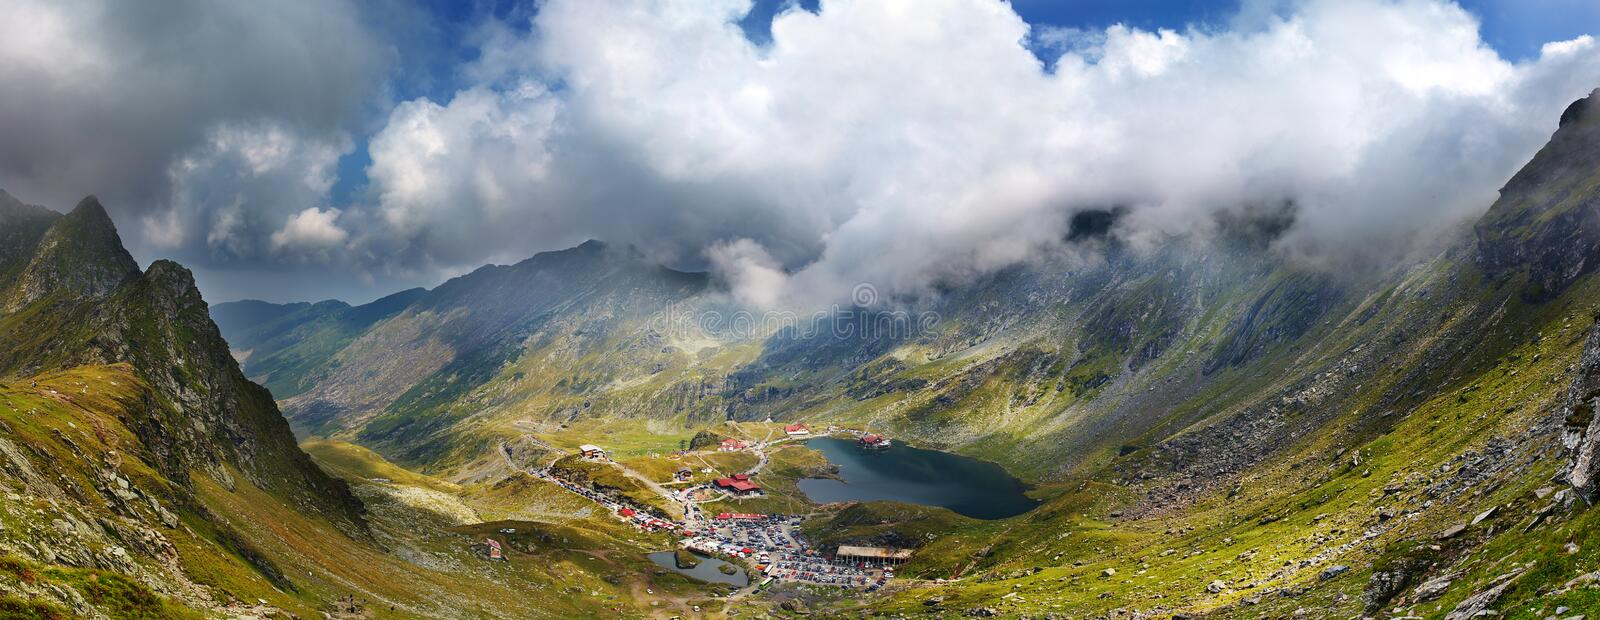 Balea lac from Fagaras mountains. Scenic view of Balea Lac from Fagaras mountains stock photos